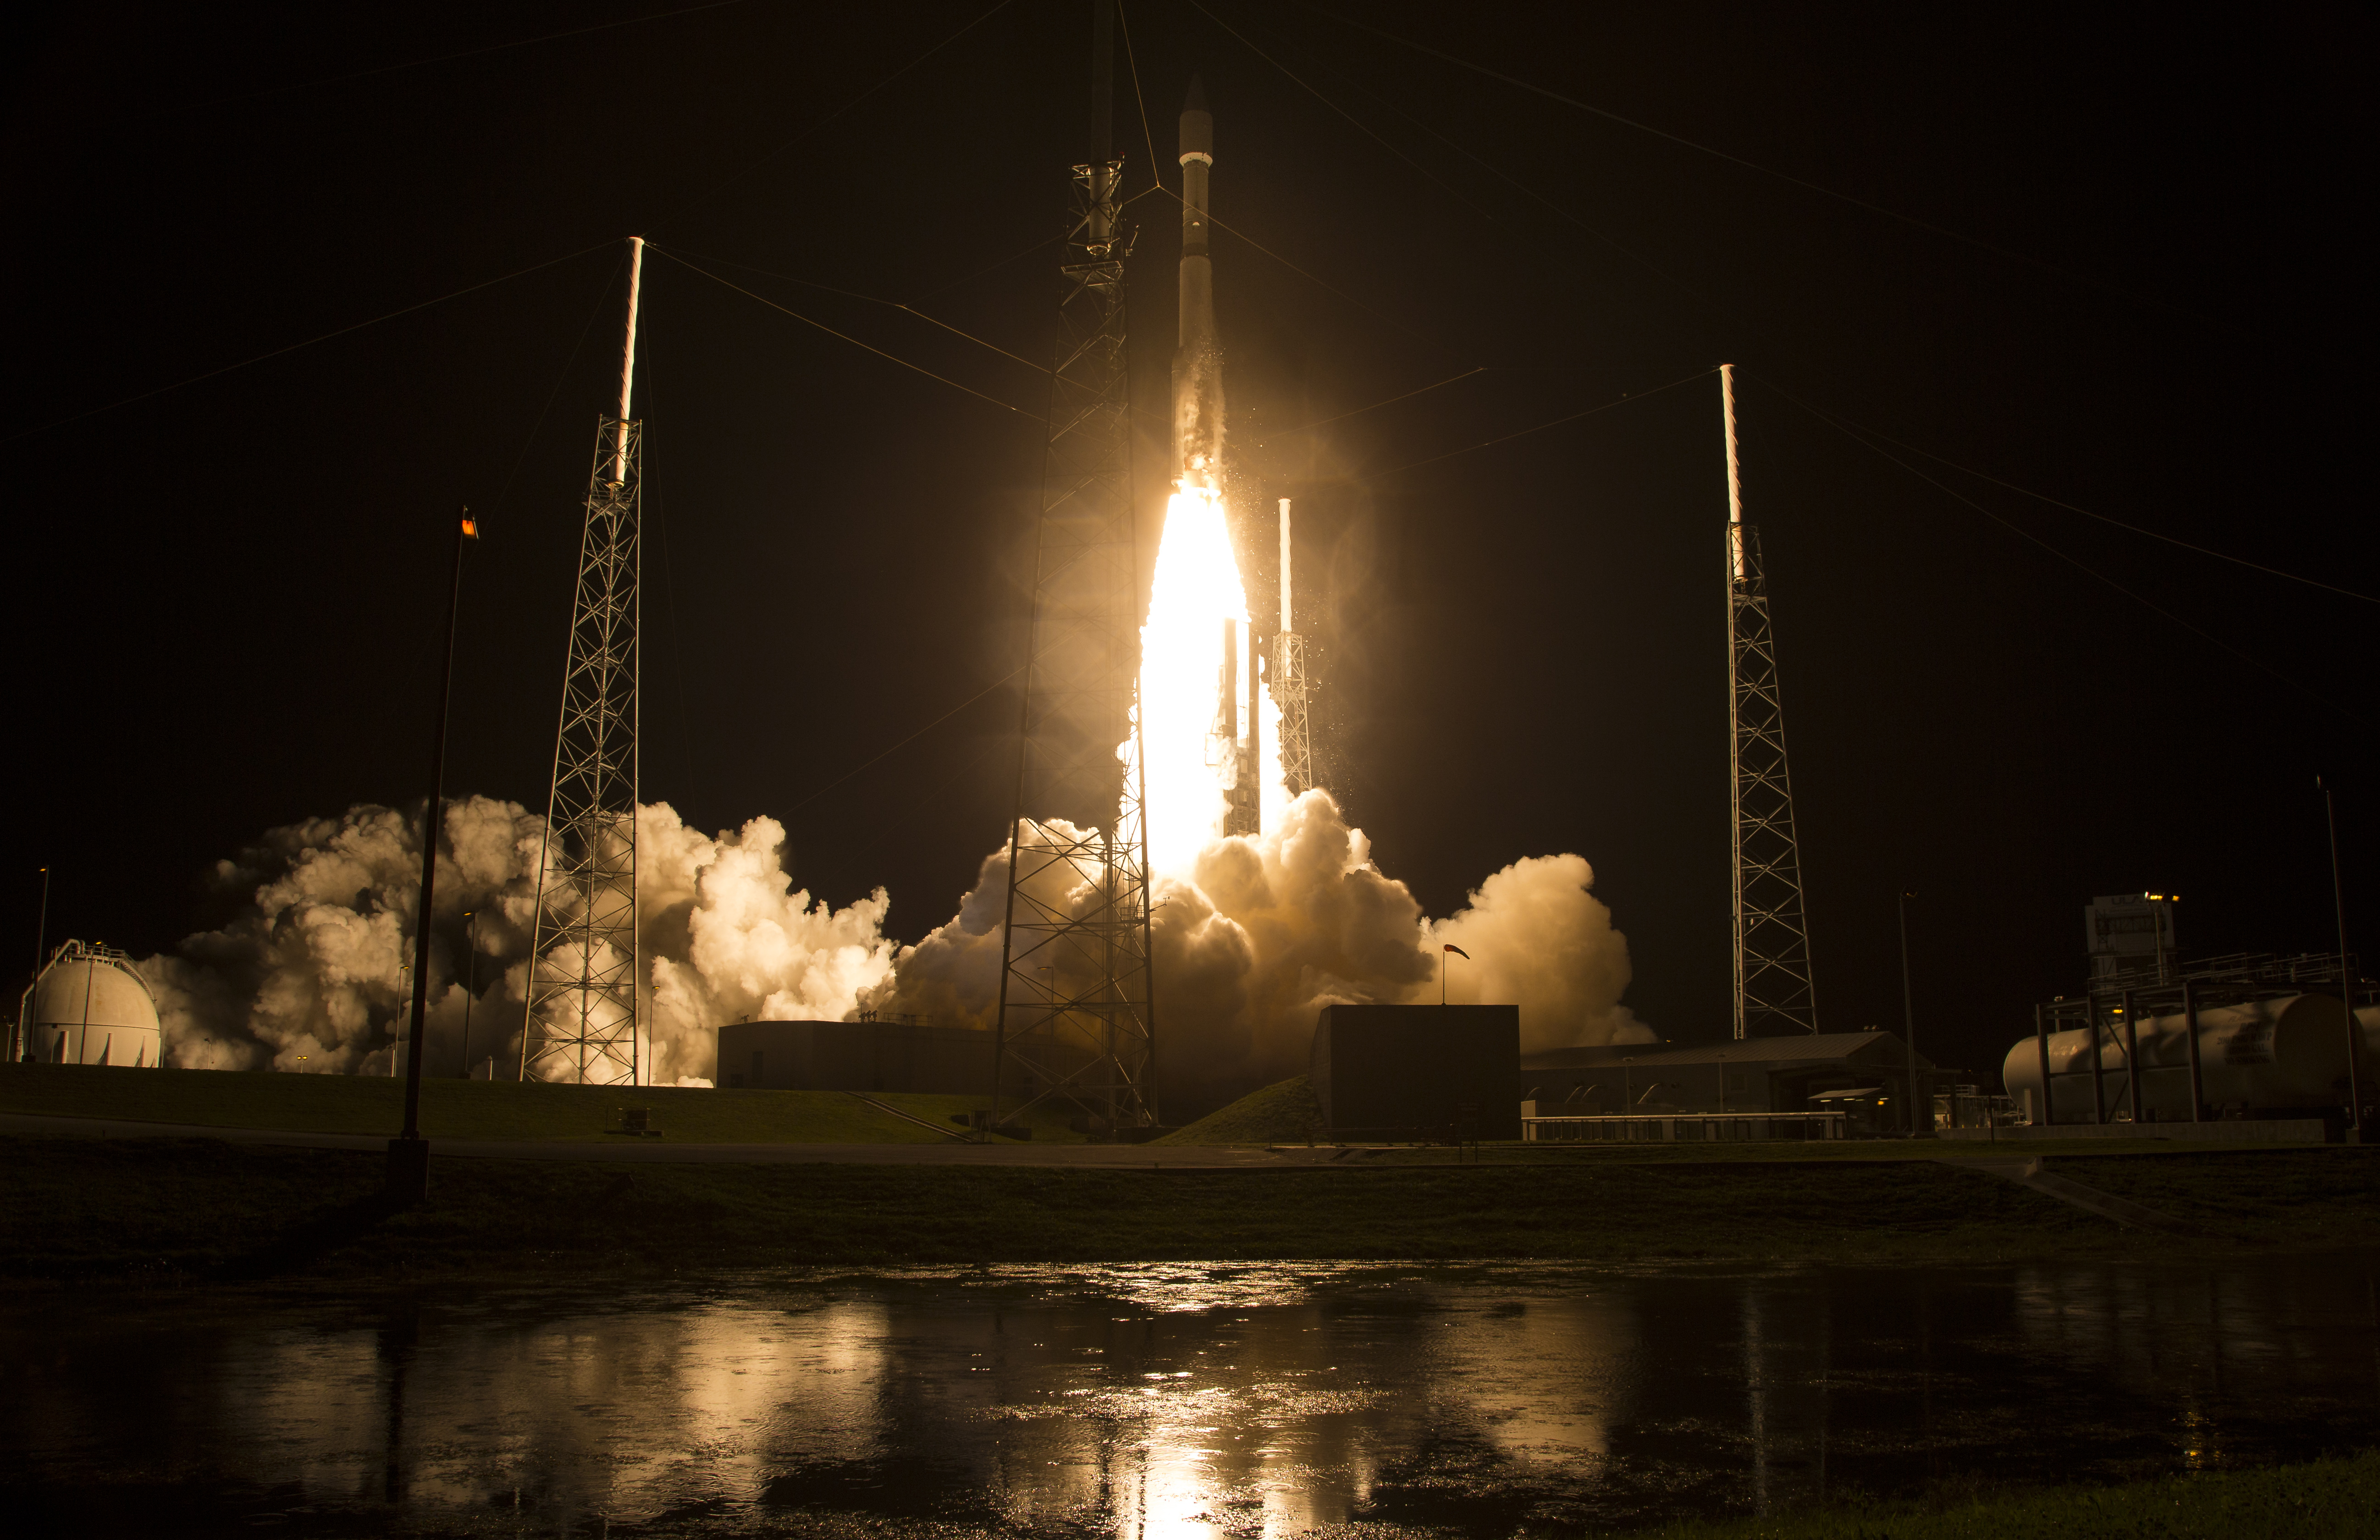 The United Launch Alliance Atlas V rocket with NASA's Magnetospheric Multiscale (MMS) spacecraft onboard launches from the Air Force Station Space Launch Complex 41 on March 12, 2015 in Cape Canaveral, Fla.